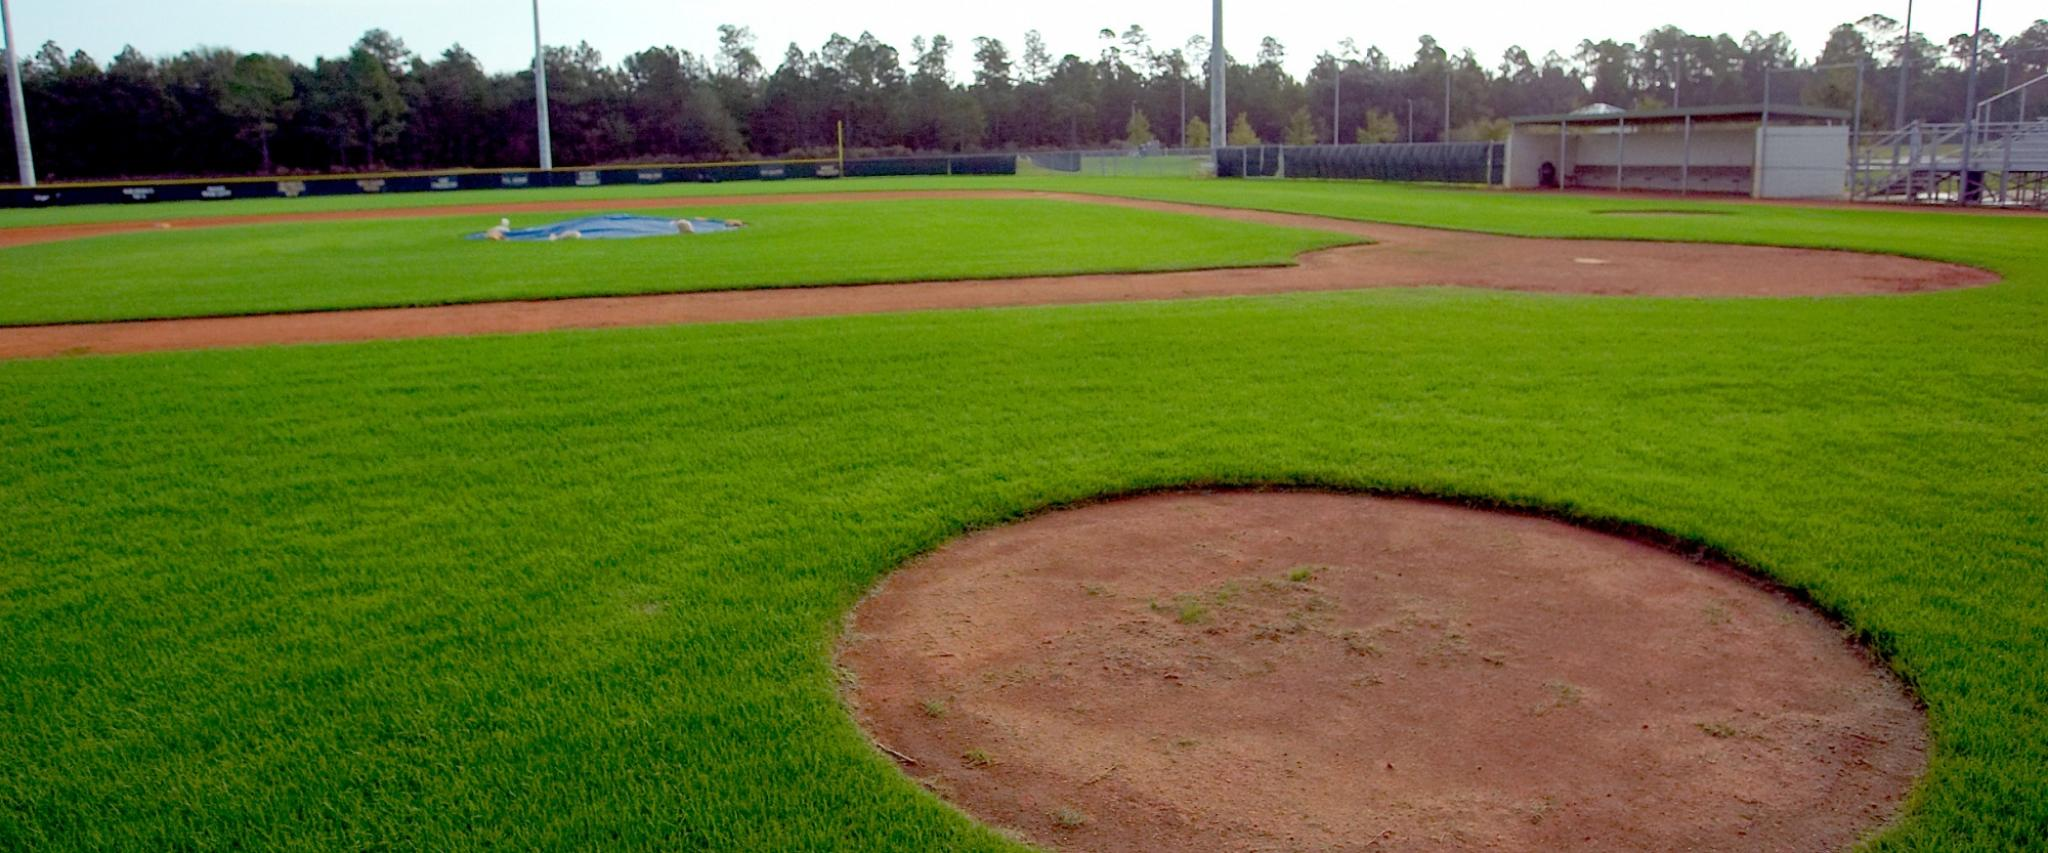 pitchers mound Gulf Shores Sportsplex Gulf Shores AL